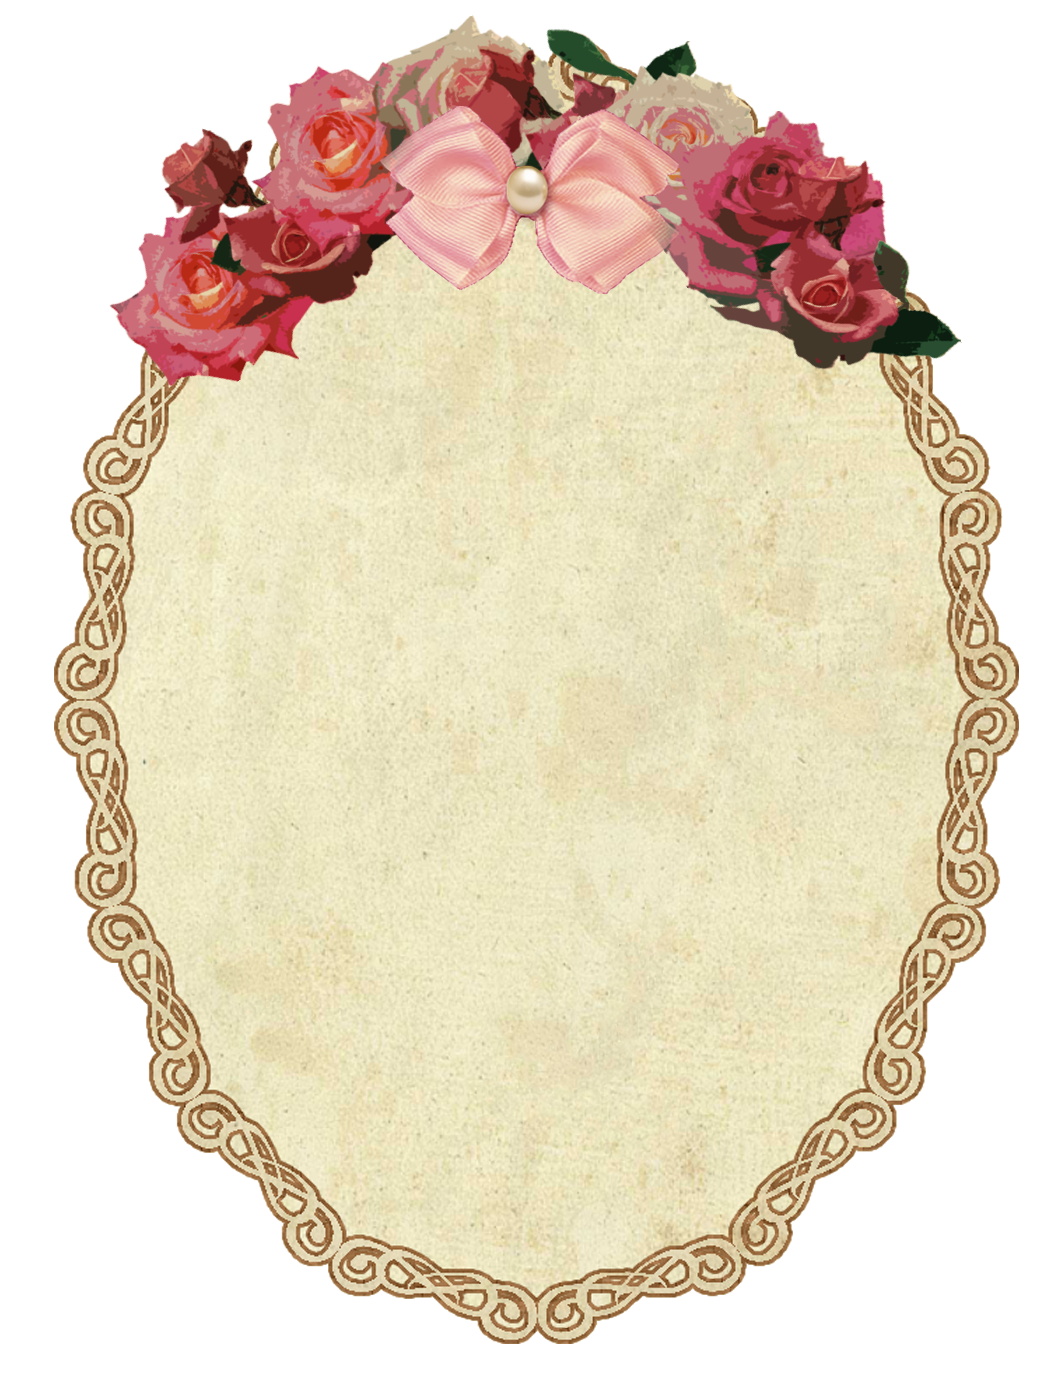 1000 1 FREE GRAPHICS 7 Vintage Roses Cliparts In PNG Transparent